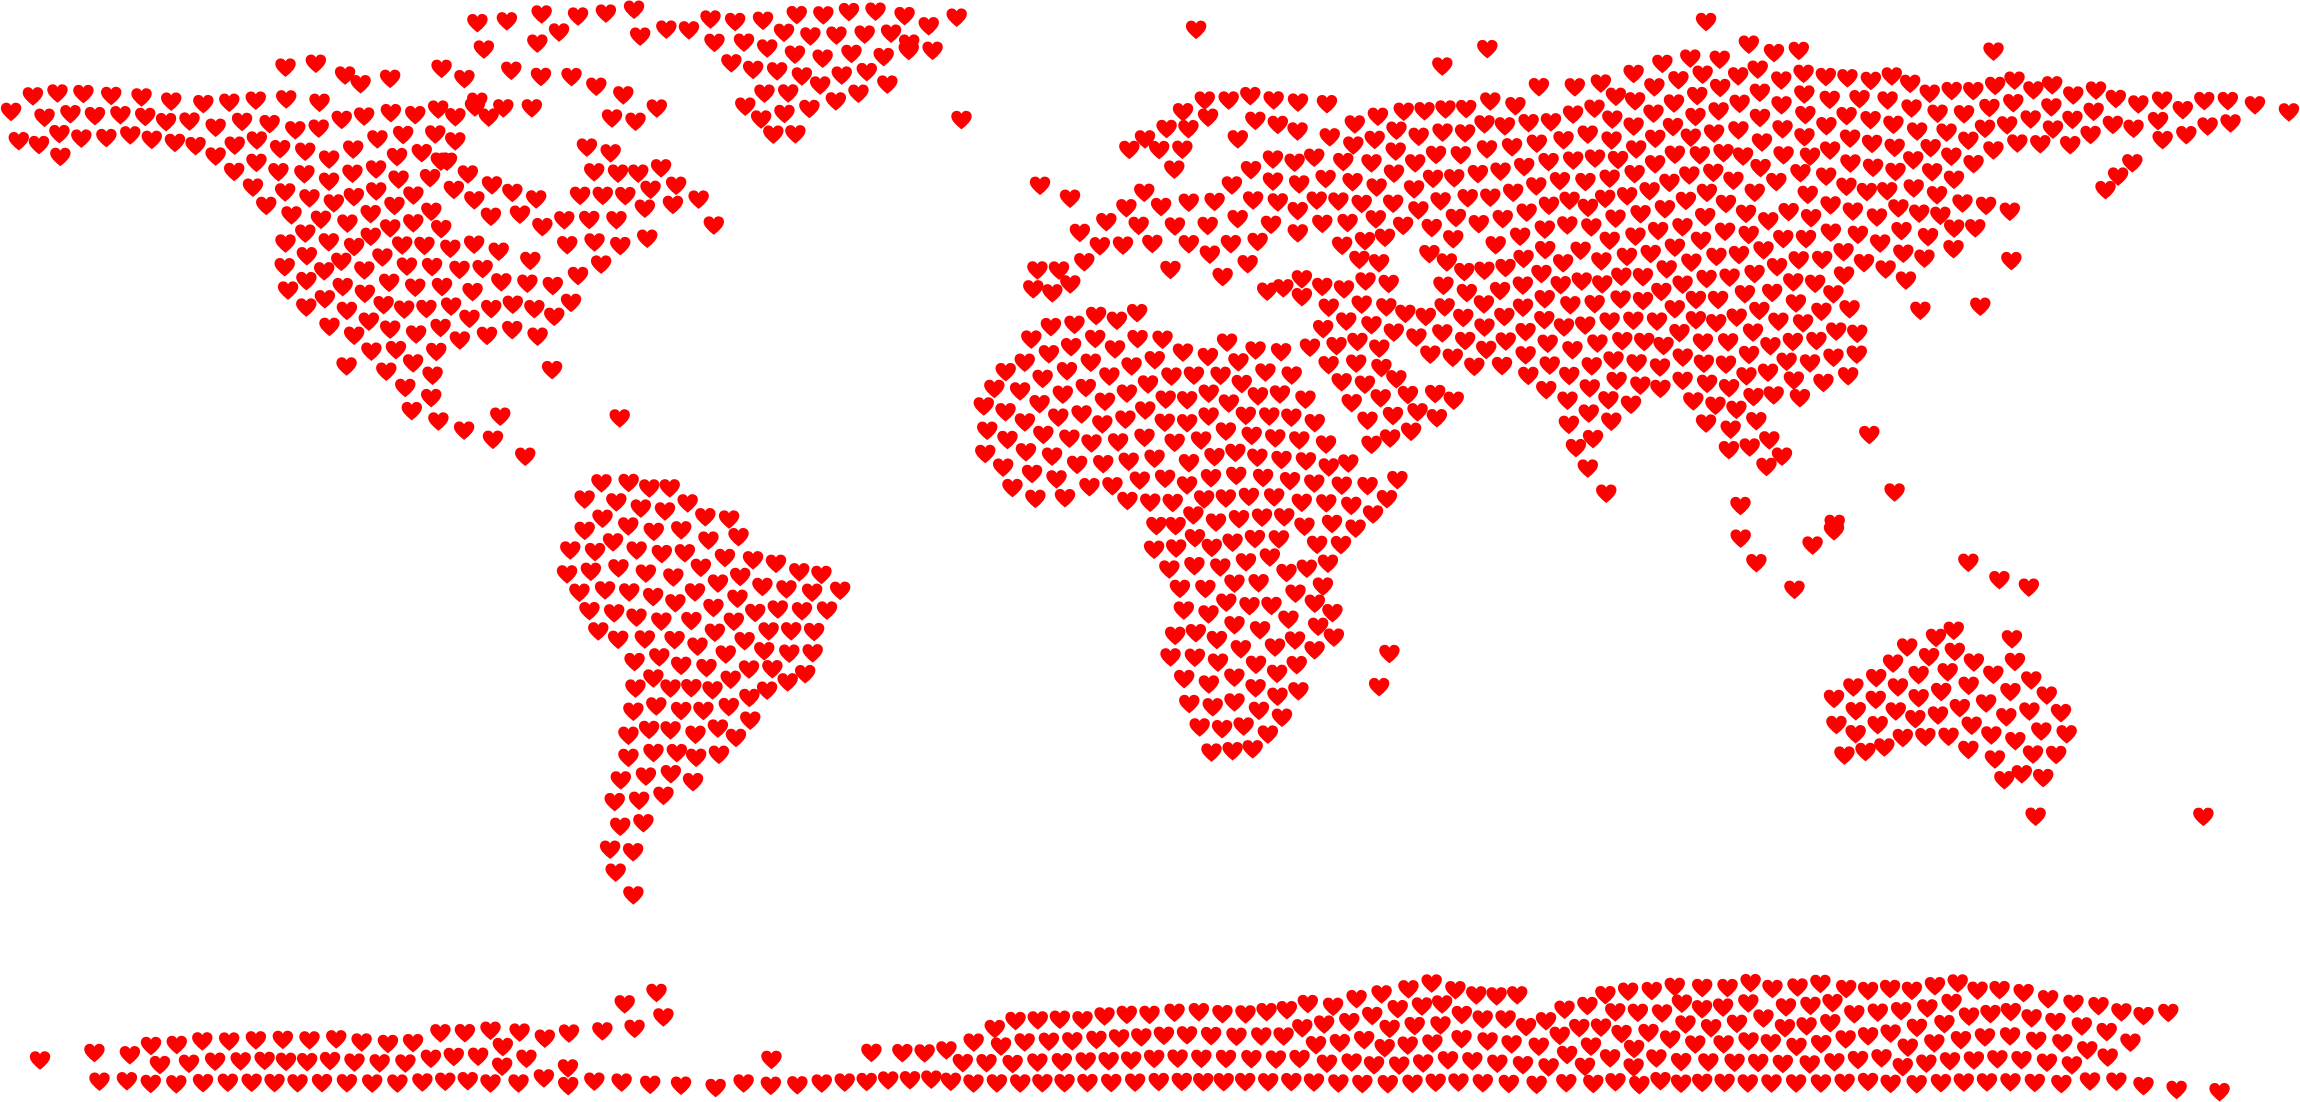 World big image png. Clipart hearts map